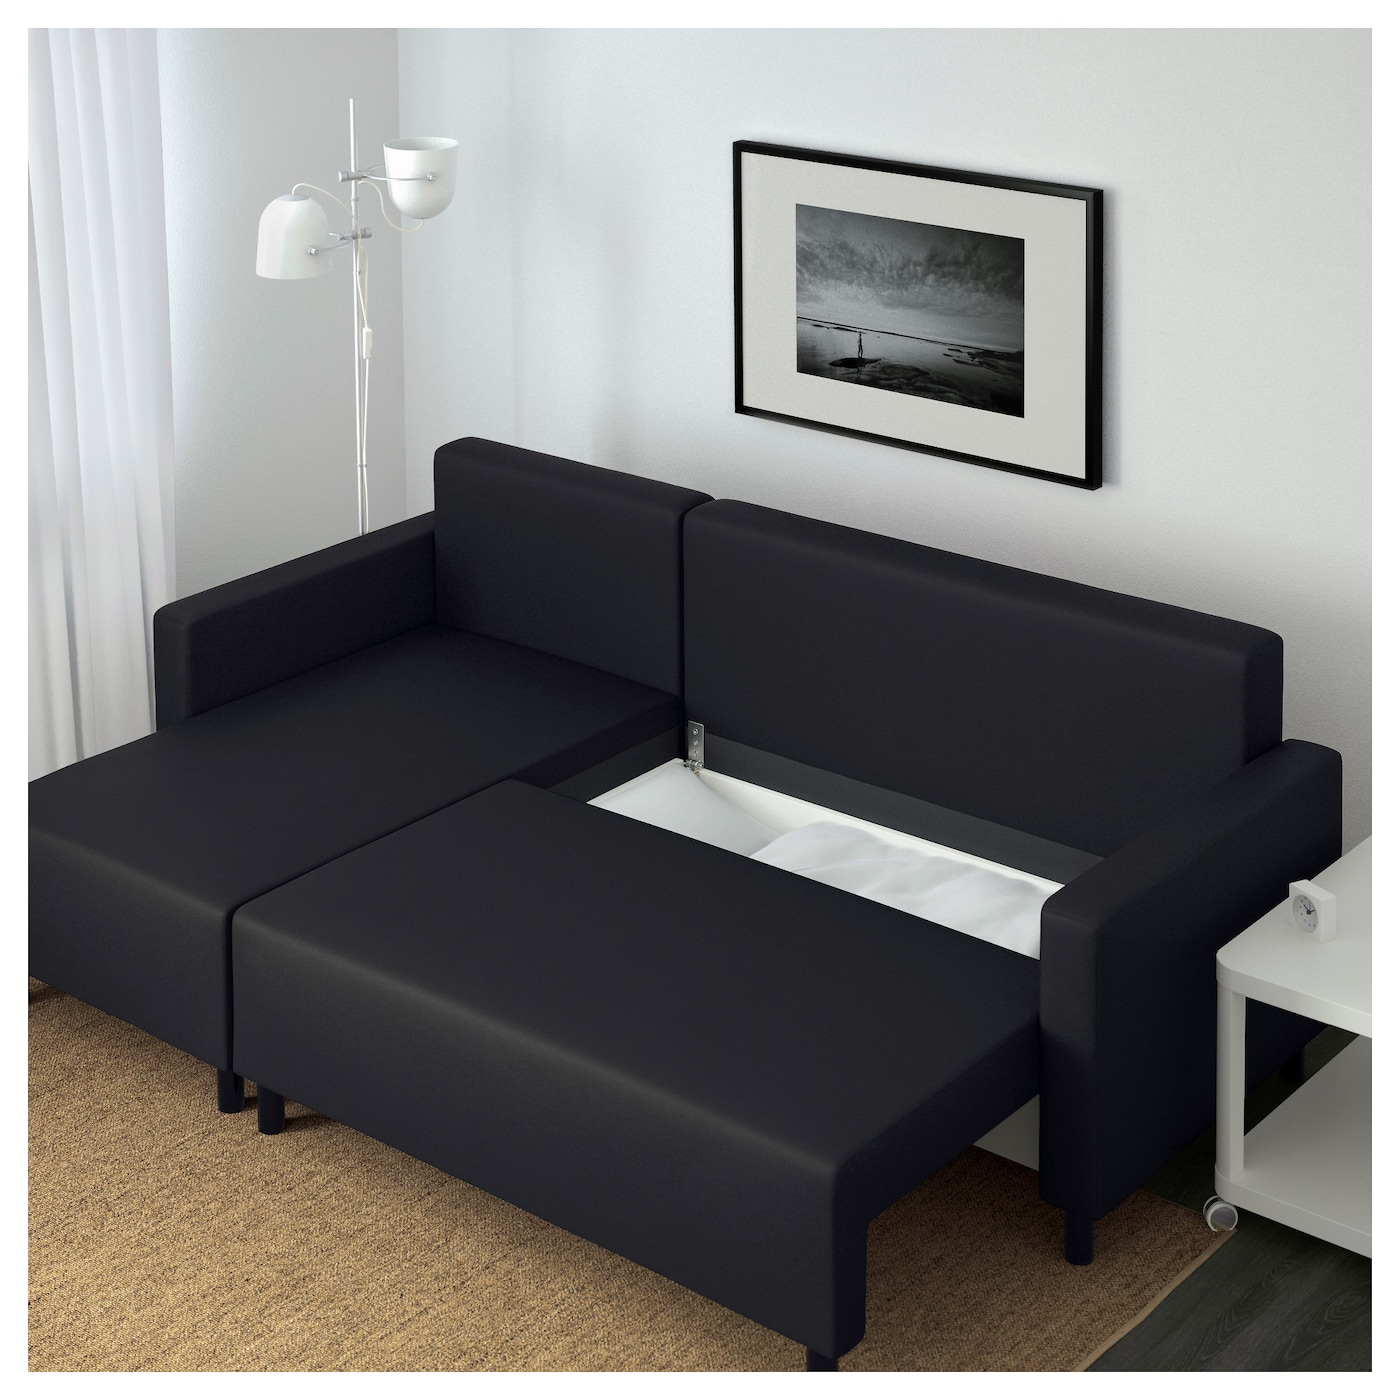 lugnvik sofa bed with chaise longue gran n black ikea. Black Bedroom Furniture Sets. Home Design Ideas